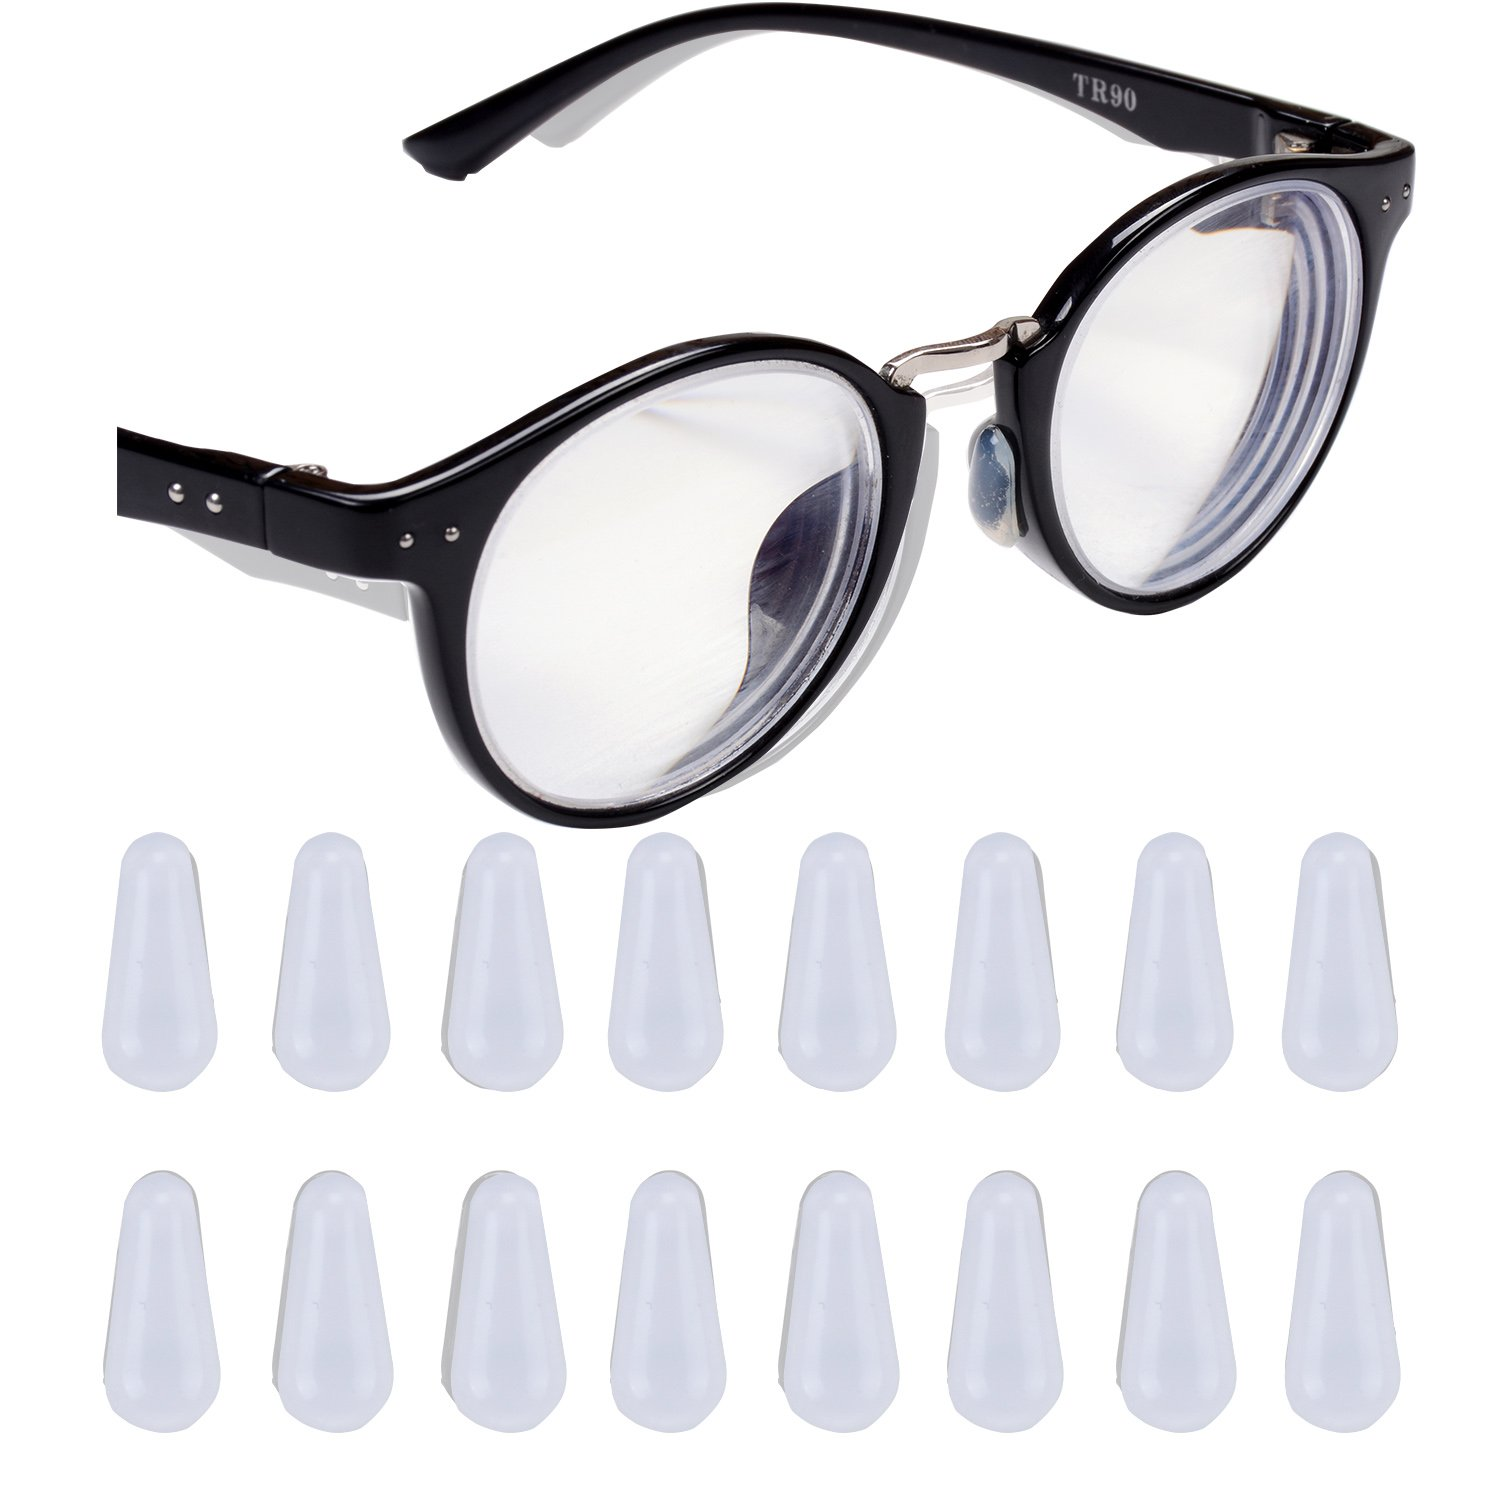 c57239820b4 Get Quotations · eMingo 10 Pair Eyeglasses Nose Pads